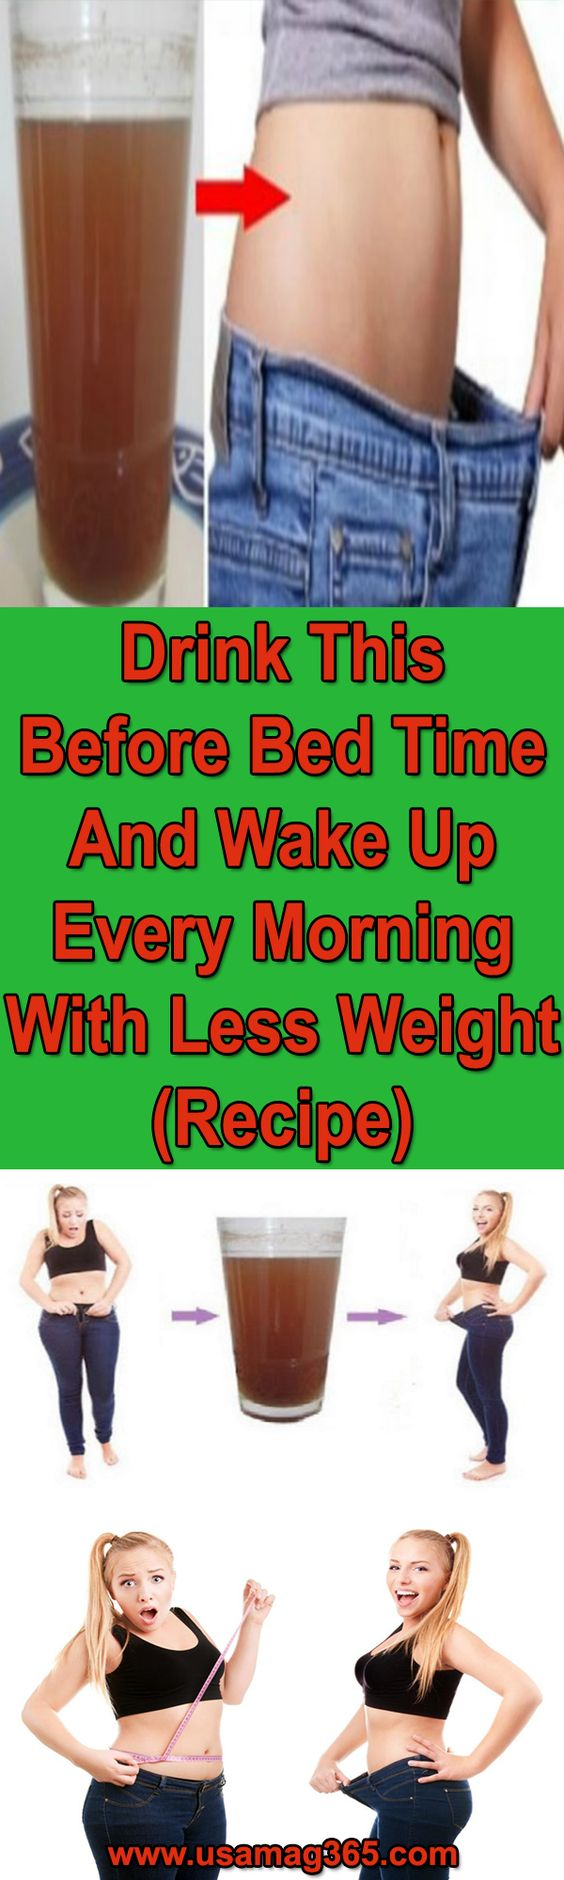 Drink This Before Bedtime And Wake Up Every Morning With Less Weight Drink This Before Bedtime And Wake Up Every Morning With Less Weight